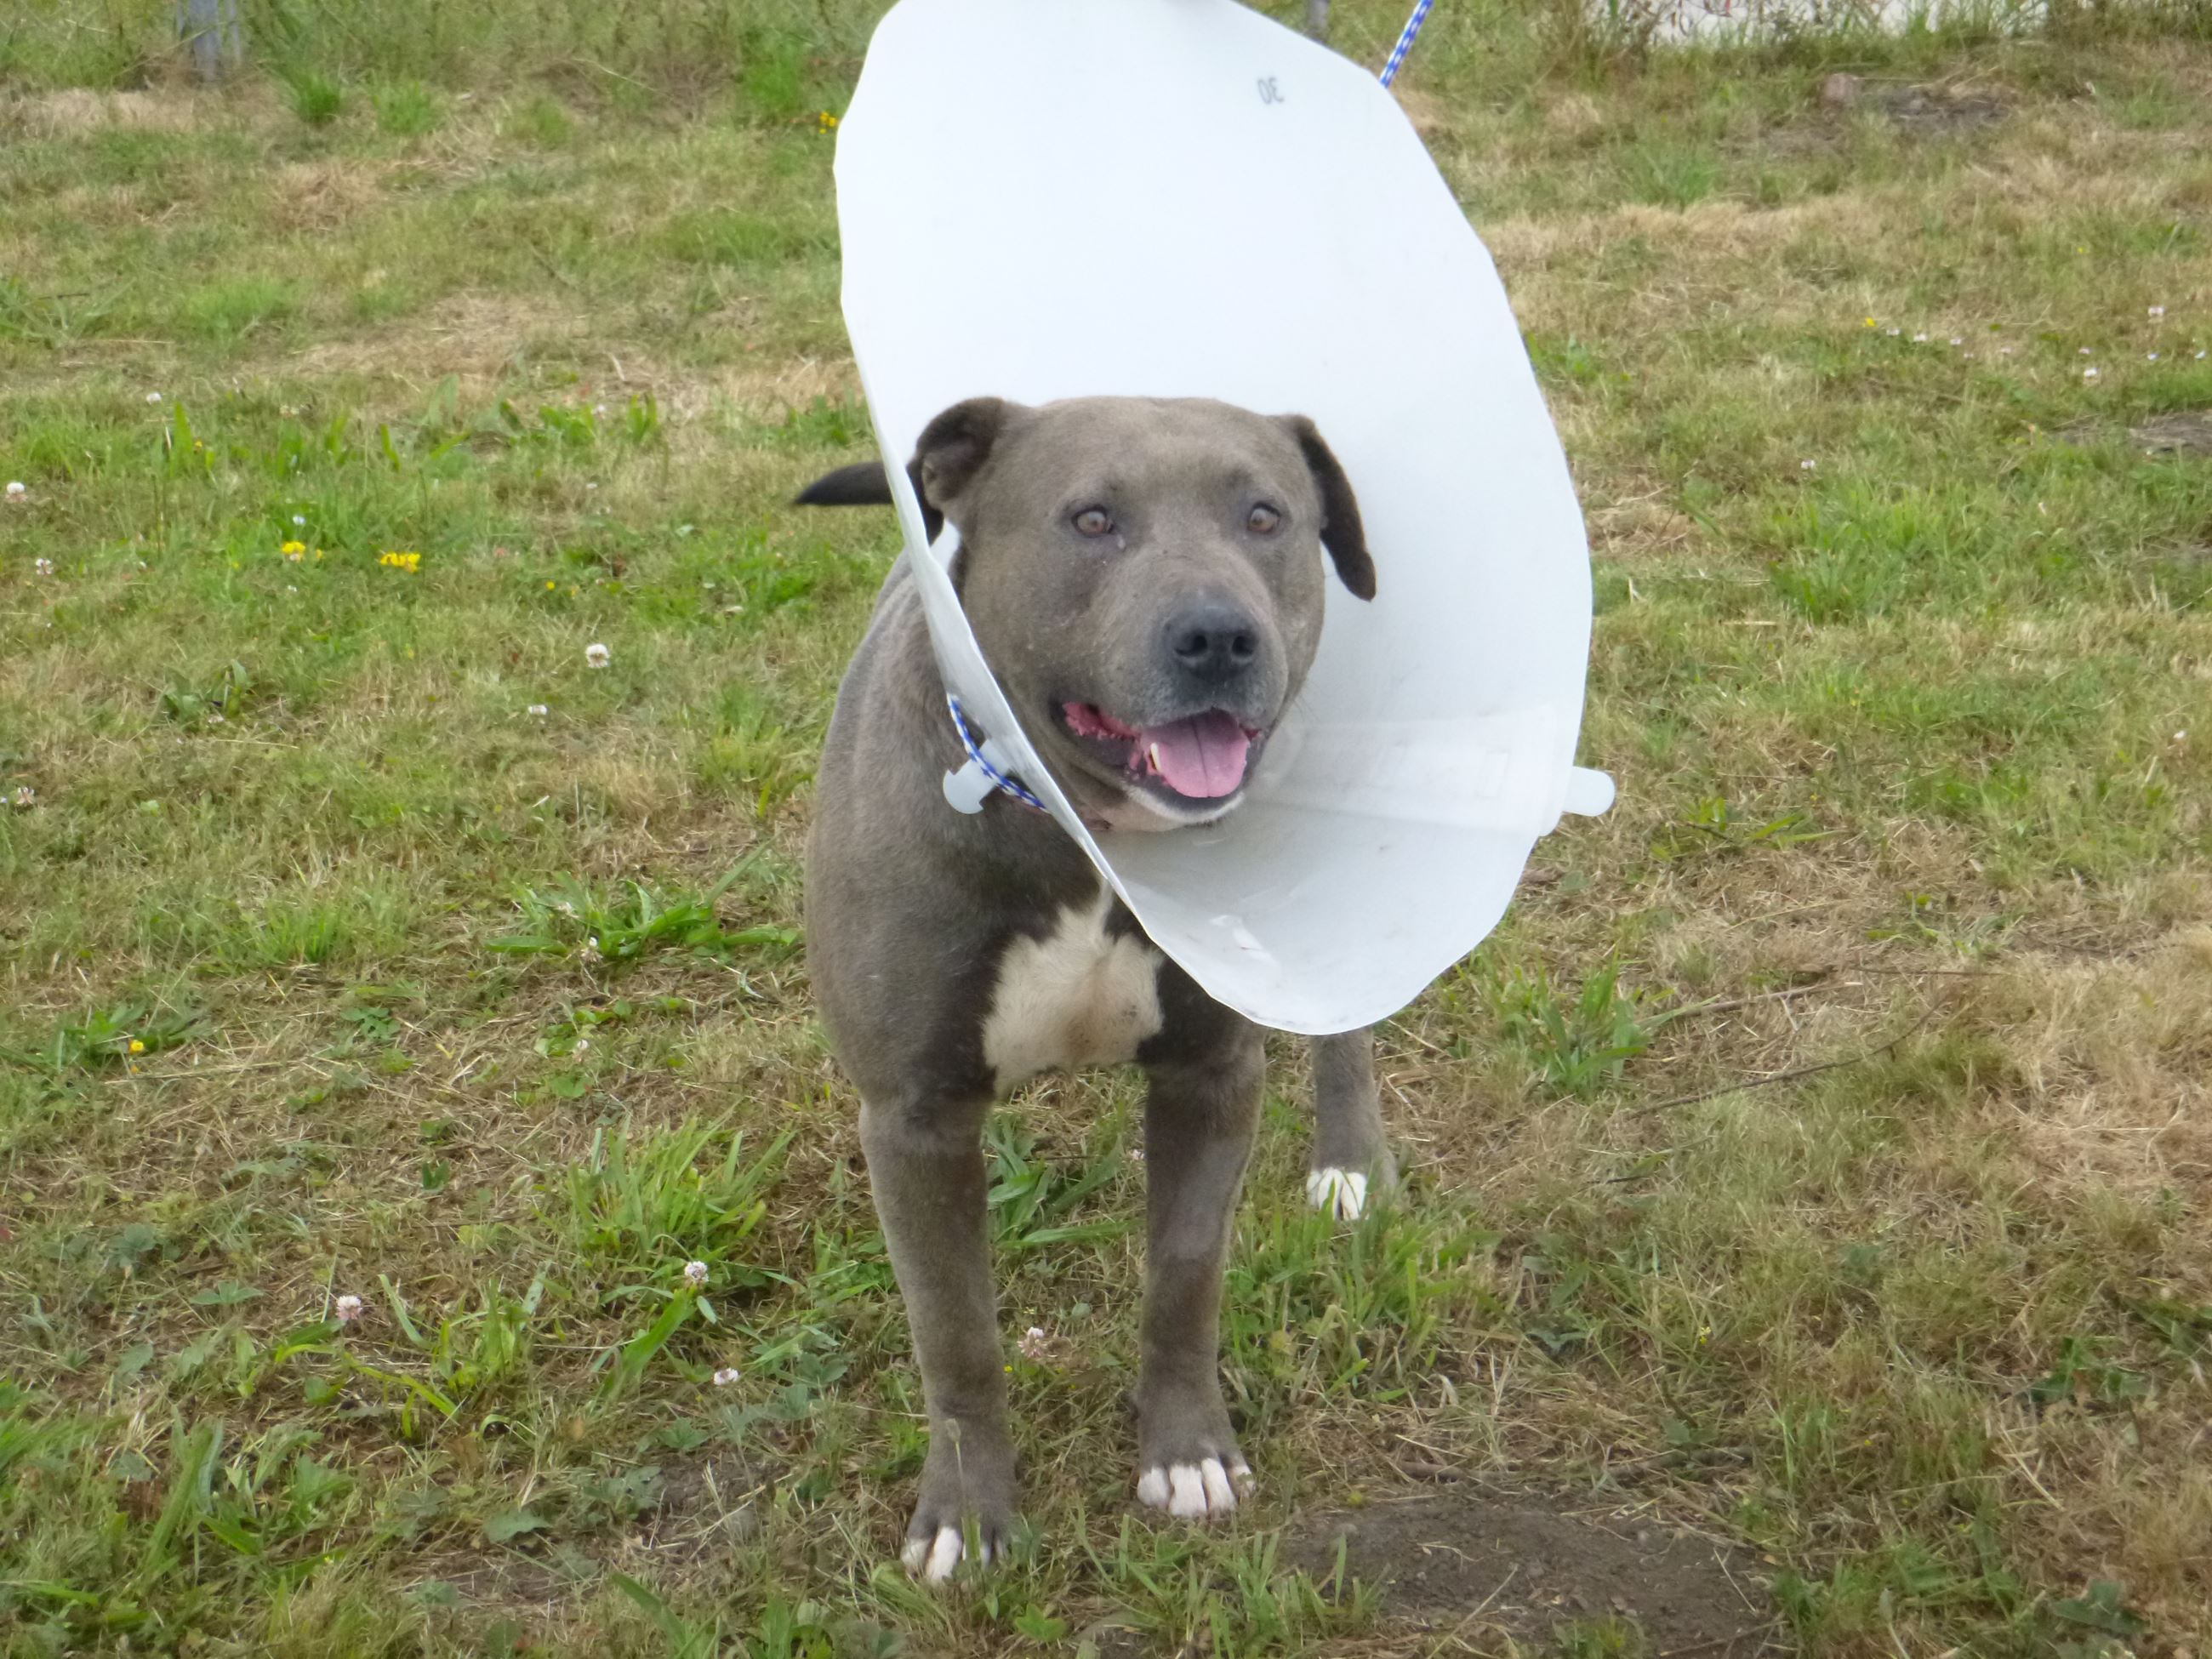 Injured dog in a field wearing a cone